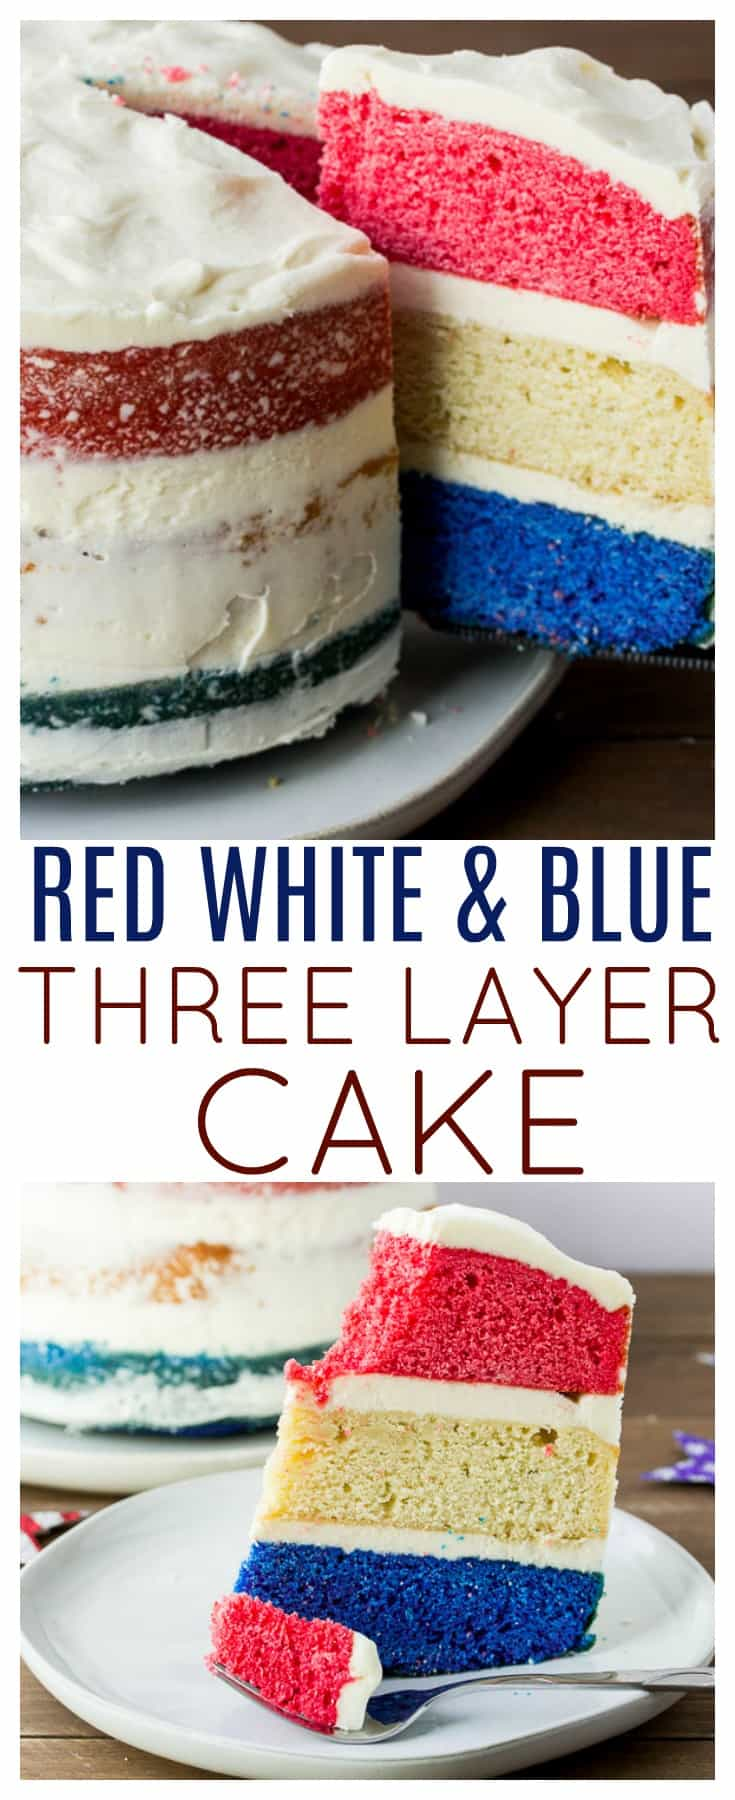 Three-layer Red, White, and Blue Cake - perfect for celebrating all things patriotic! Switch up the colors and this delicious three layer vanilla cake recipe becomes the perfect dessert for any special event! | AD #MySilpat #threelayercake #3layercake #vanillacake #vanillacakerecipe #nakedcake #dlbrecipes